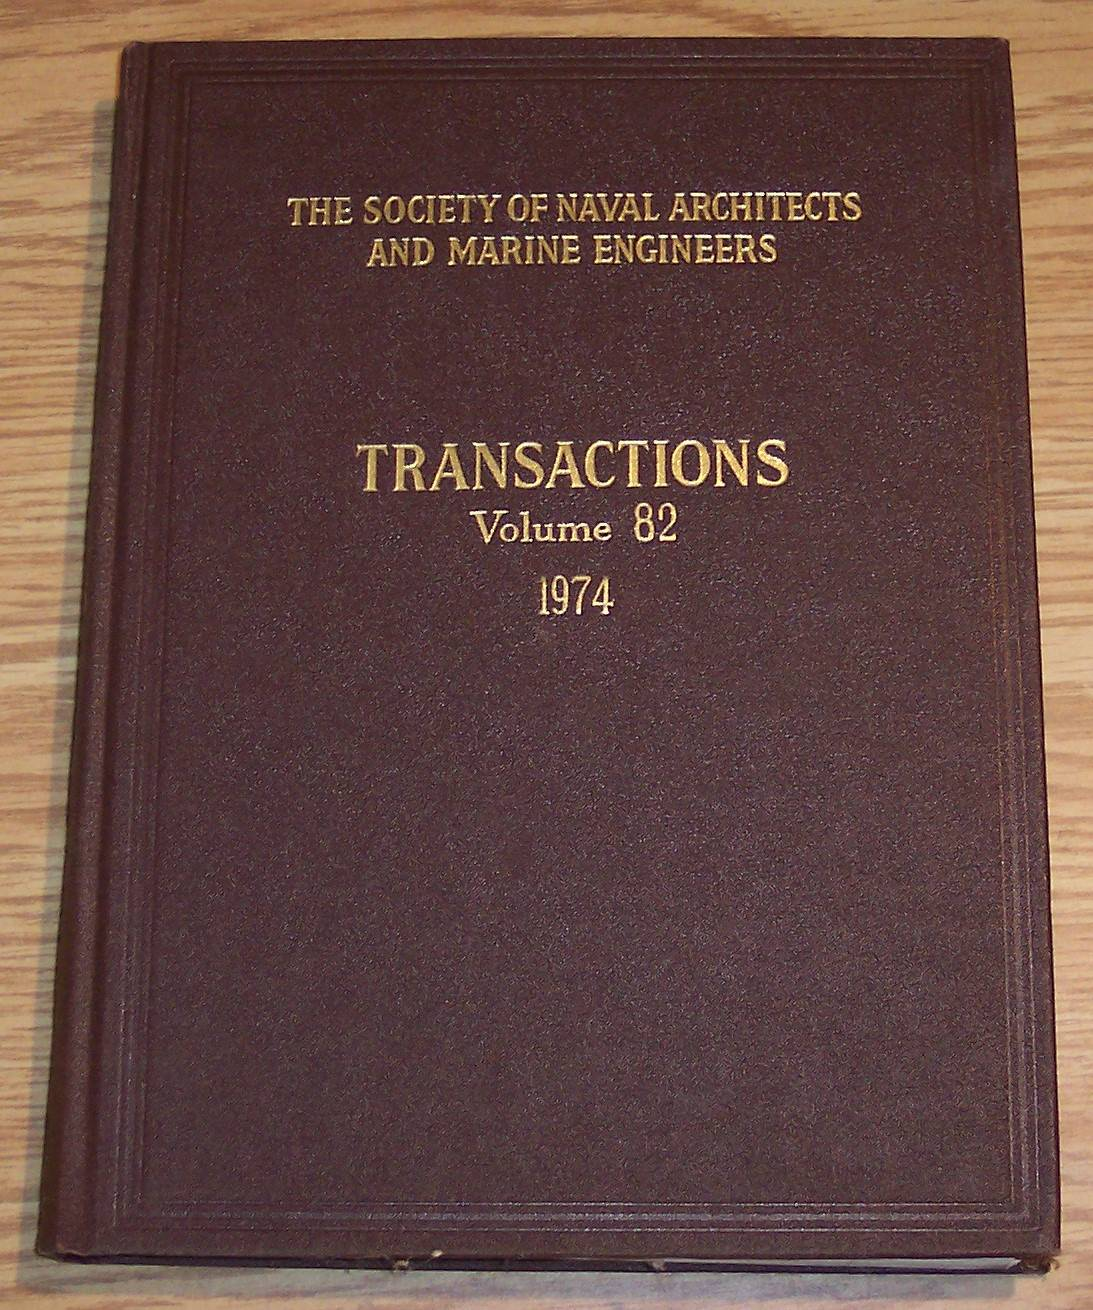 Image for The Society of Naval Architects and Marine Engineers Transactions Volume 82 1974